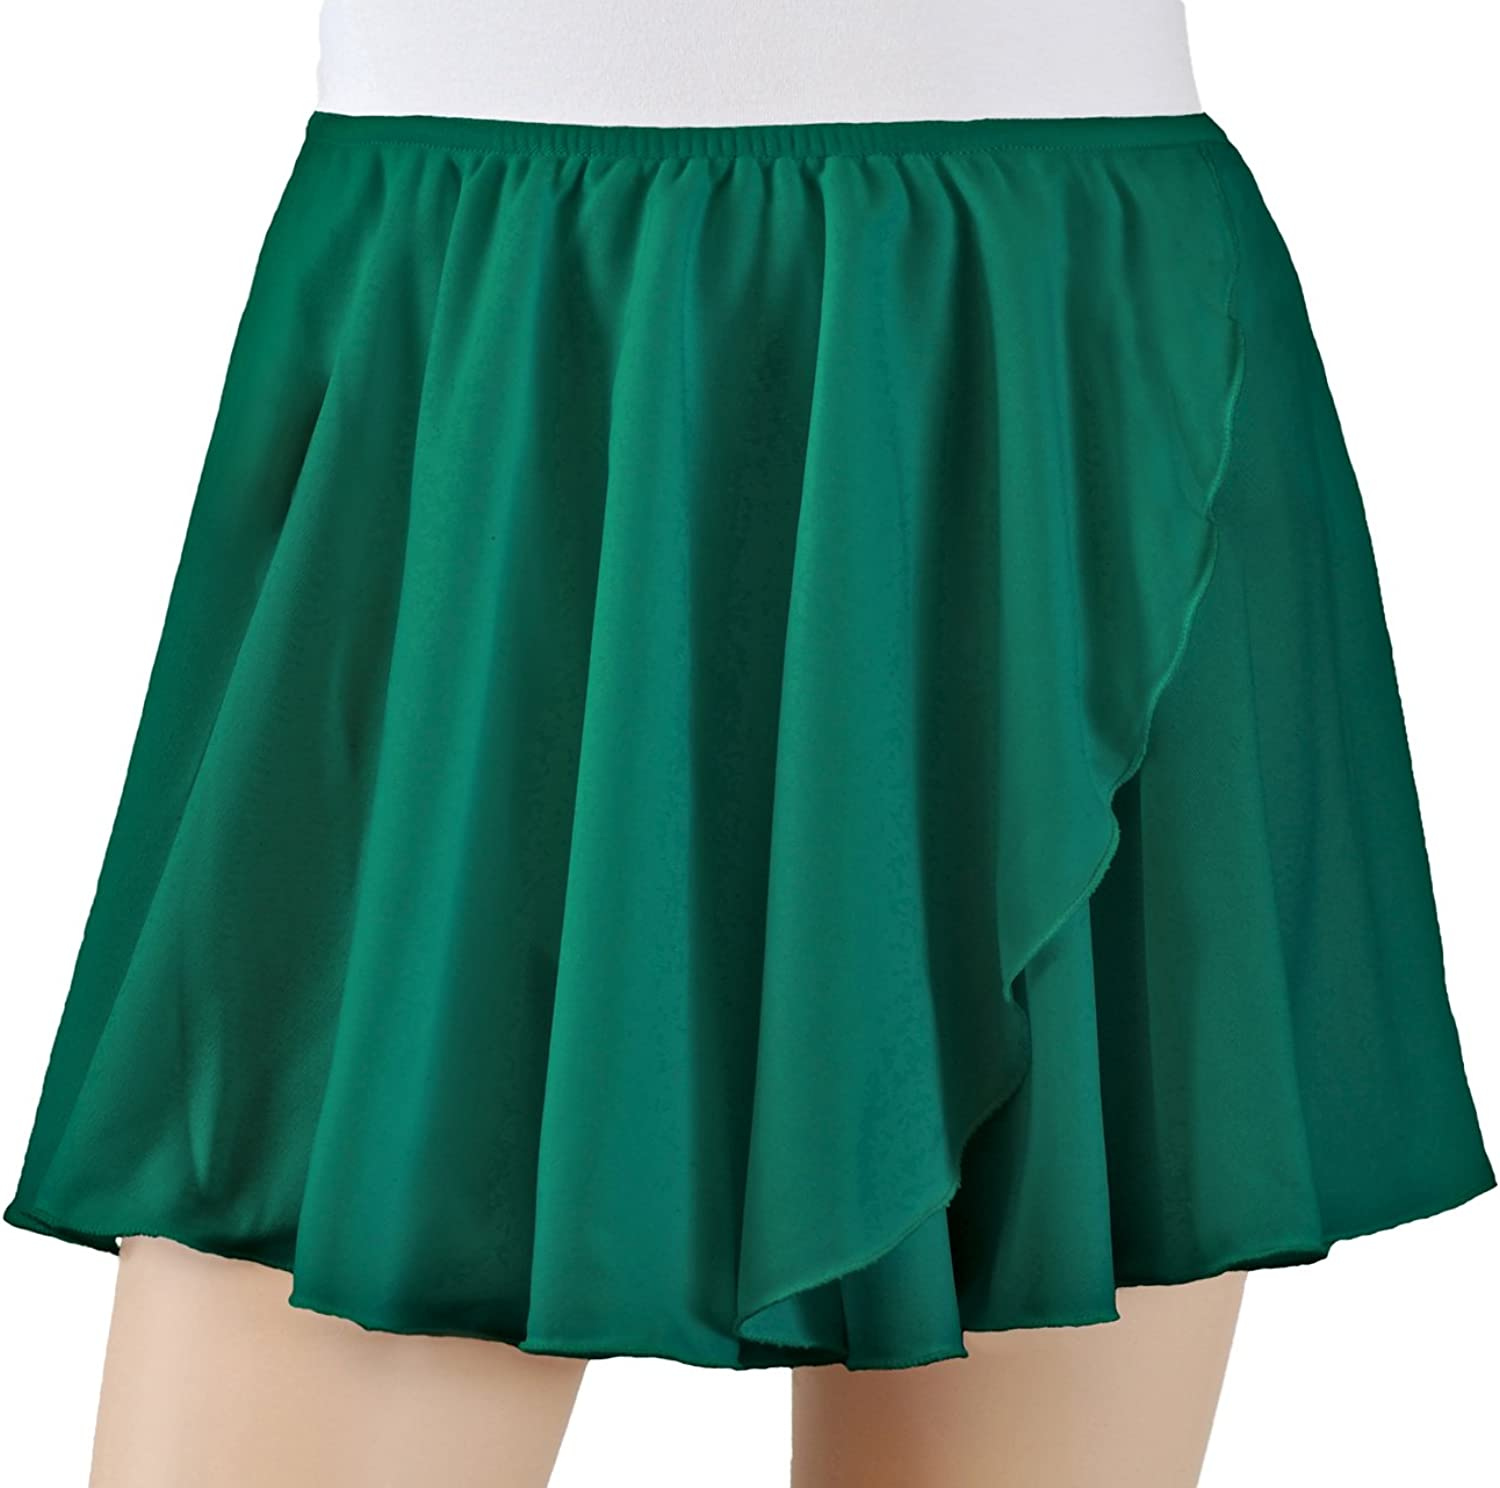 Trienawear Girls Pull-On Dance Skirt As Sales of SALE items from new works Wrap TR501-10 Max 81% OFF Mock 10